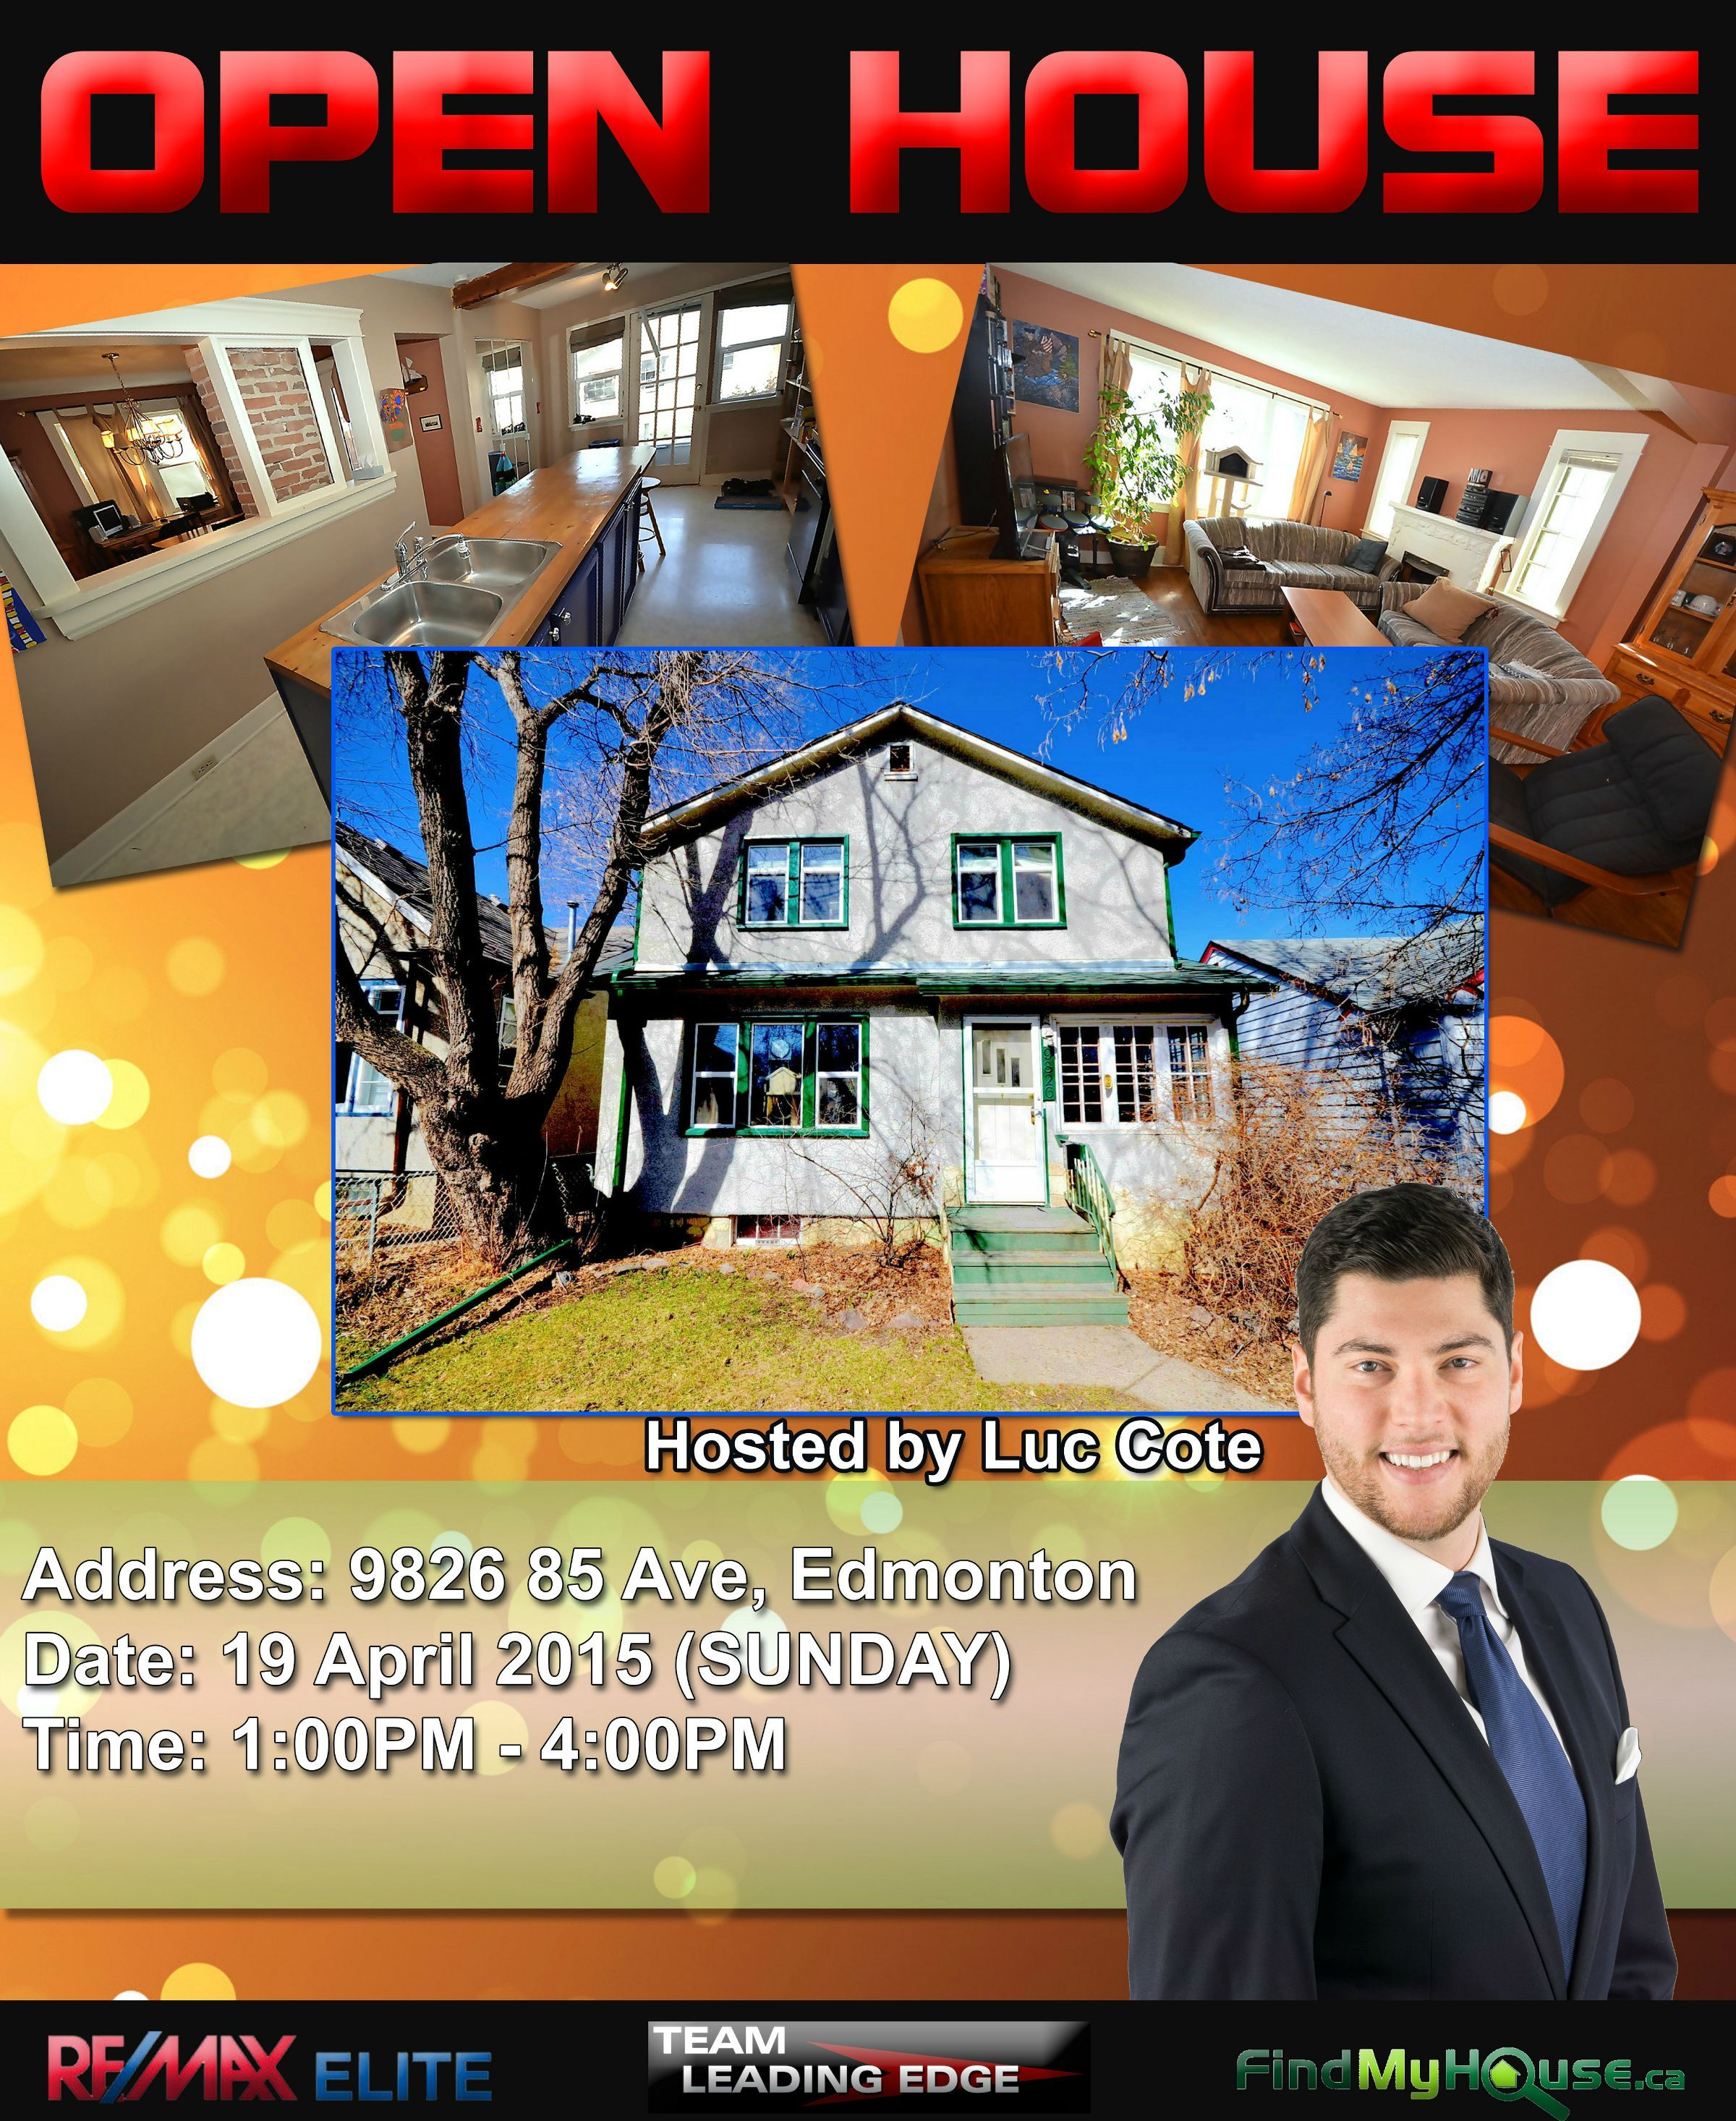 For only $430,000, this 4 bedrooms, 3 baths Strathcona Edmonton house is the perfect deal this month of April 2015!  STRATHCONA OPEN HOUSE: 9826 85 Ave, Edmonton | $430,000 http://ow.ly/LGaUW  #edmontonrealestate  #edmontonhomesforsale #edmontonproperties #edmontonrealestateblog